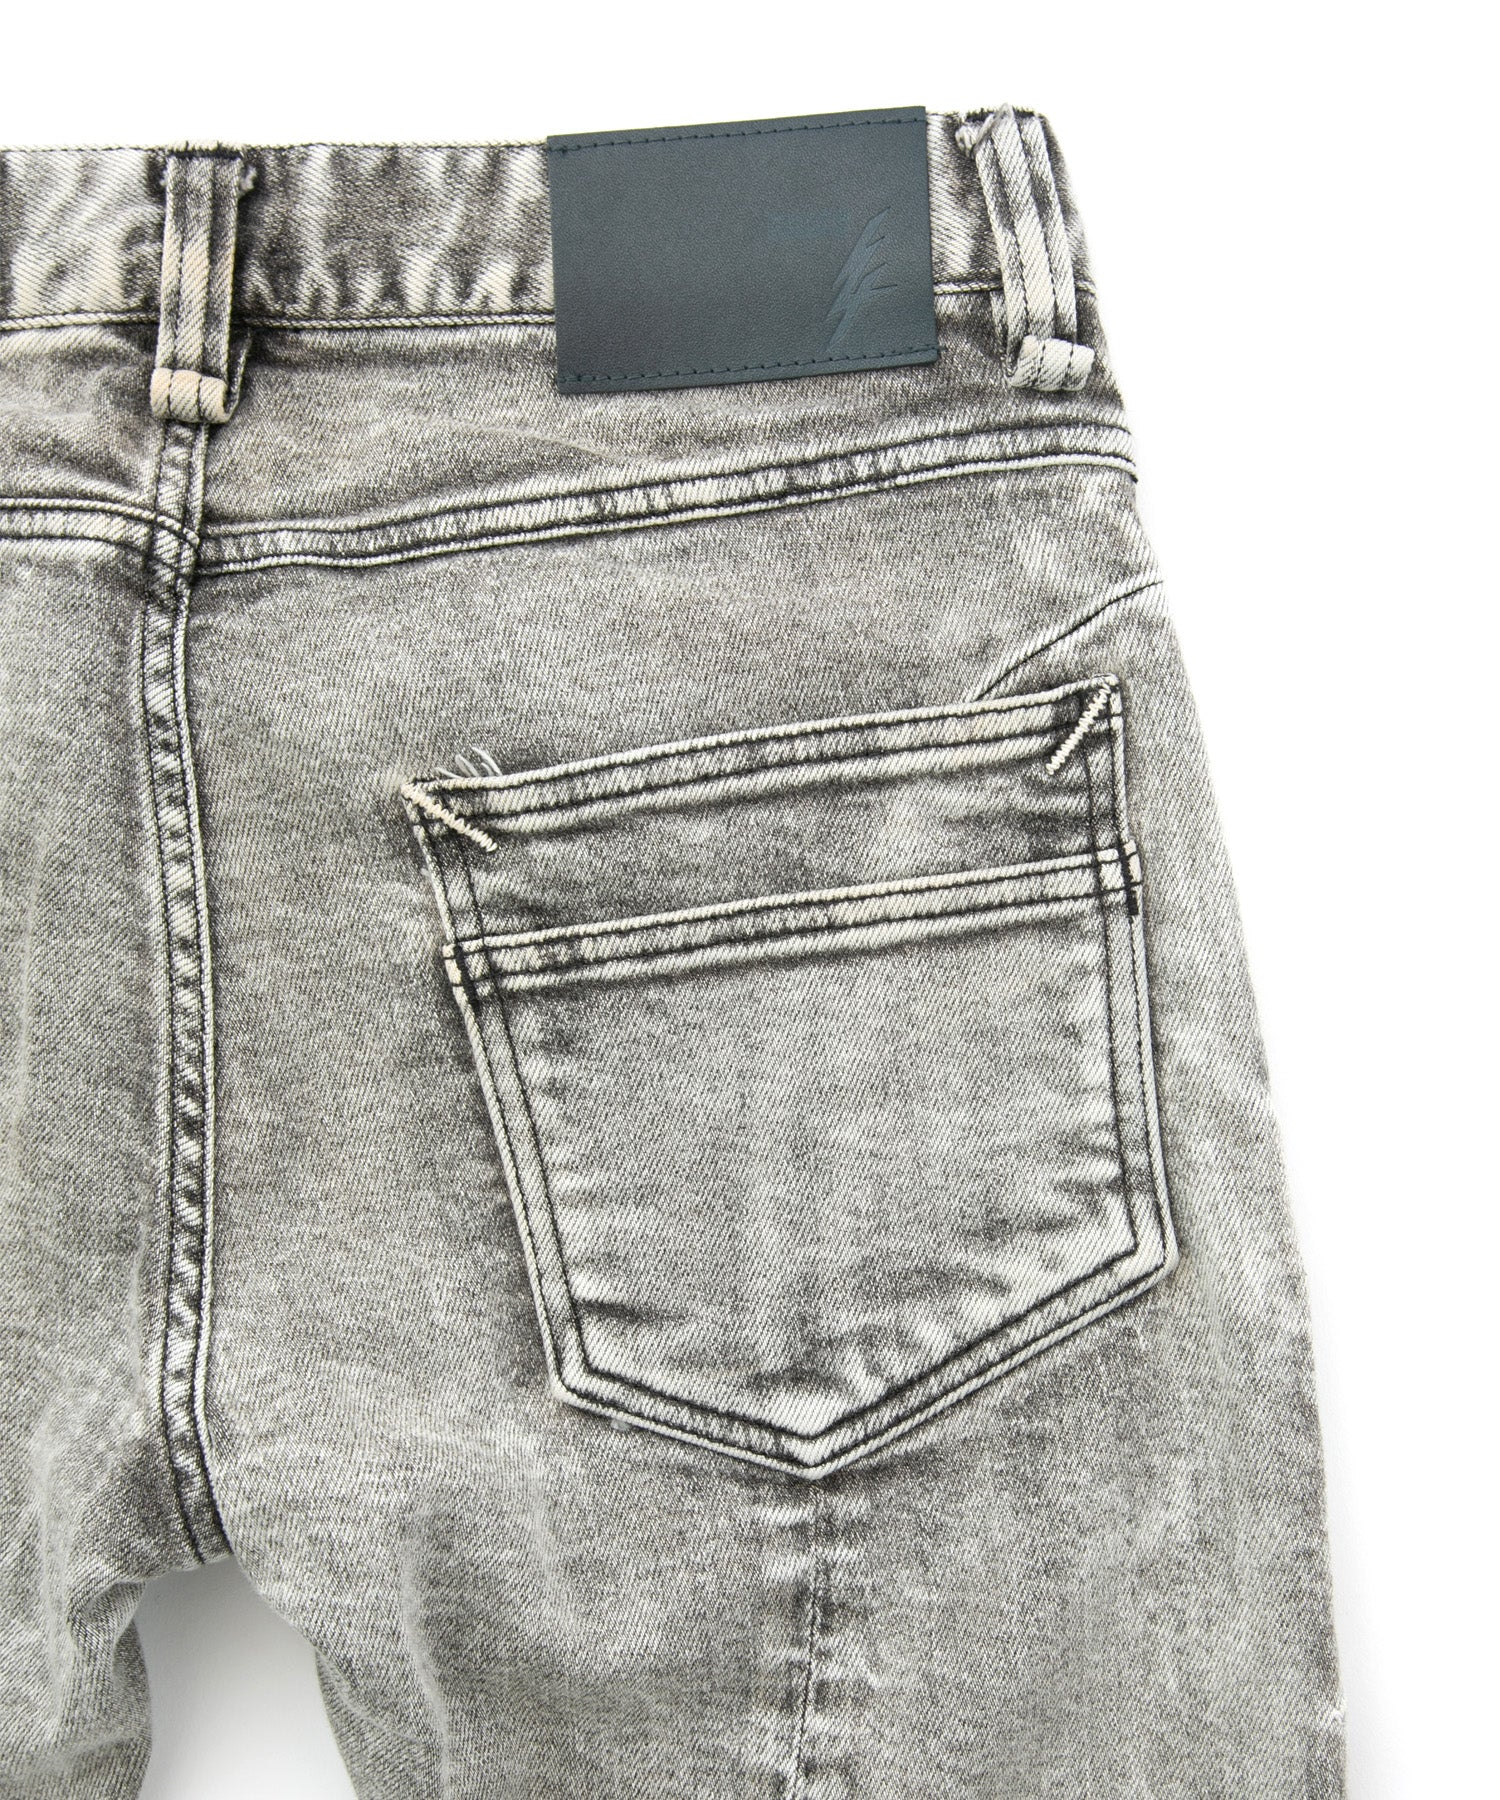 Load image into Gallery viewer, 11oz Organic Cotton Stretch Denim Skinny Jeans / WHITE